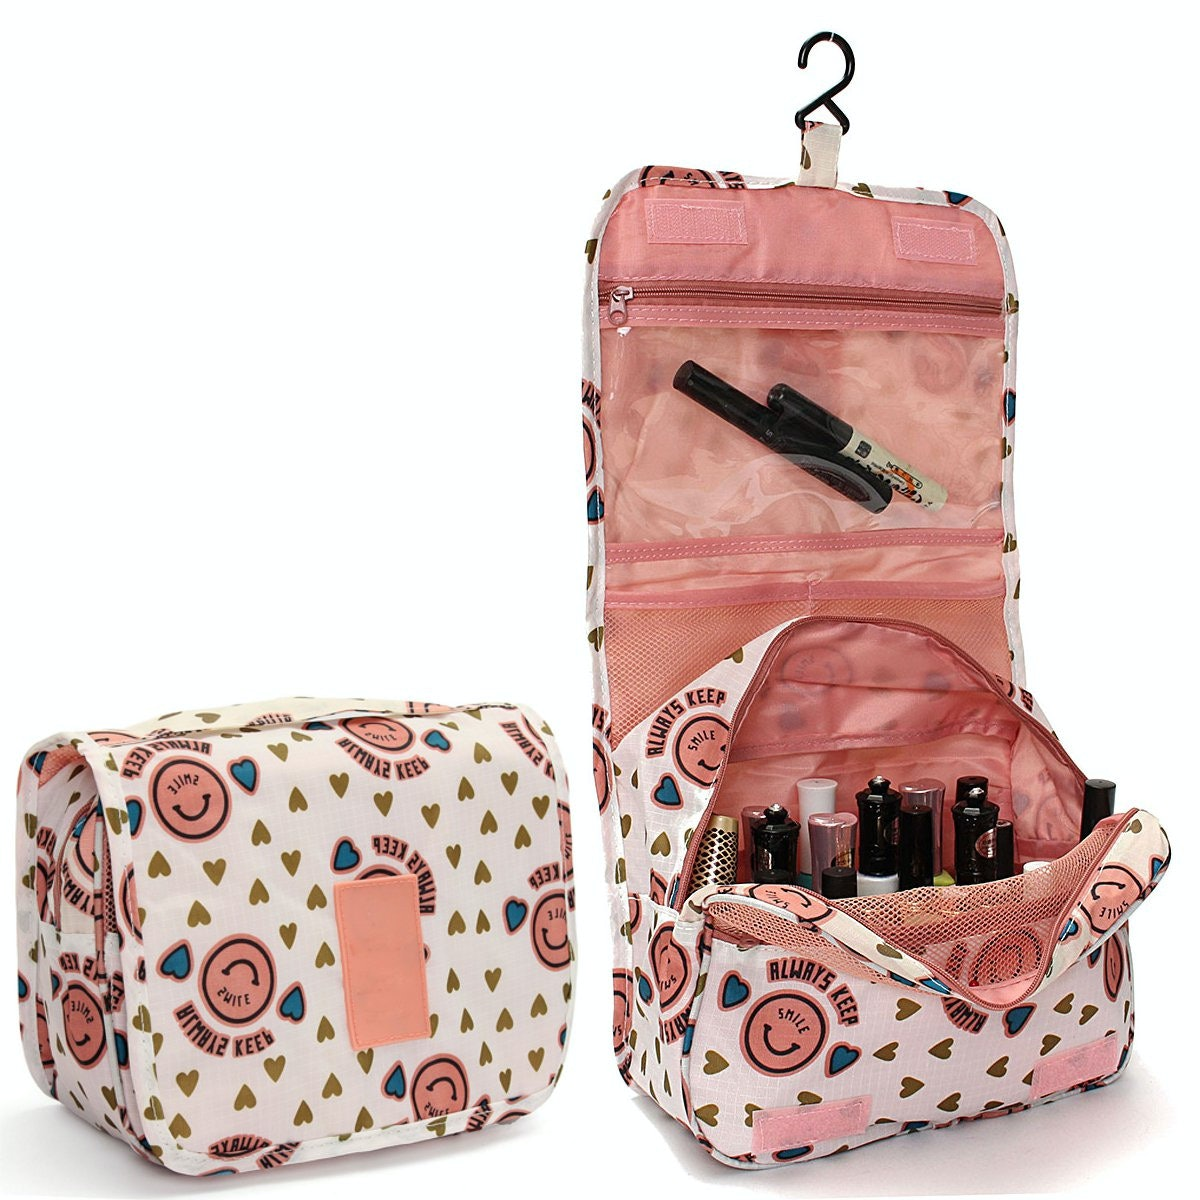 Hanging Toiletry Bag With Hanging Hook